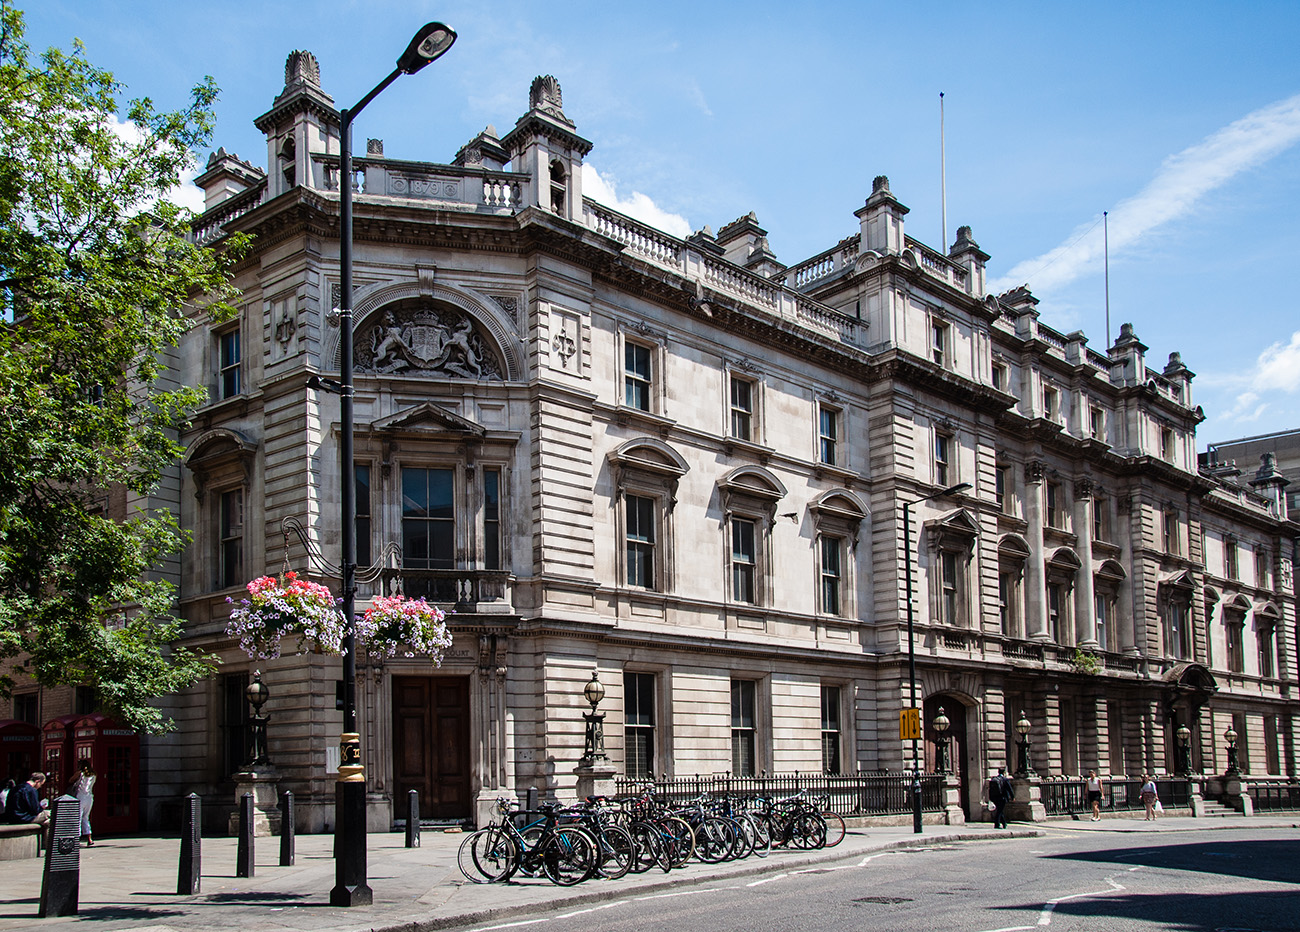 The building is Grade II-listed and has undergone adaptive reuse for its new role